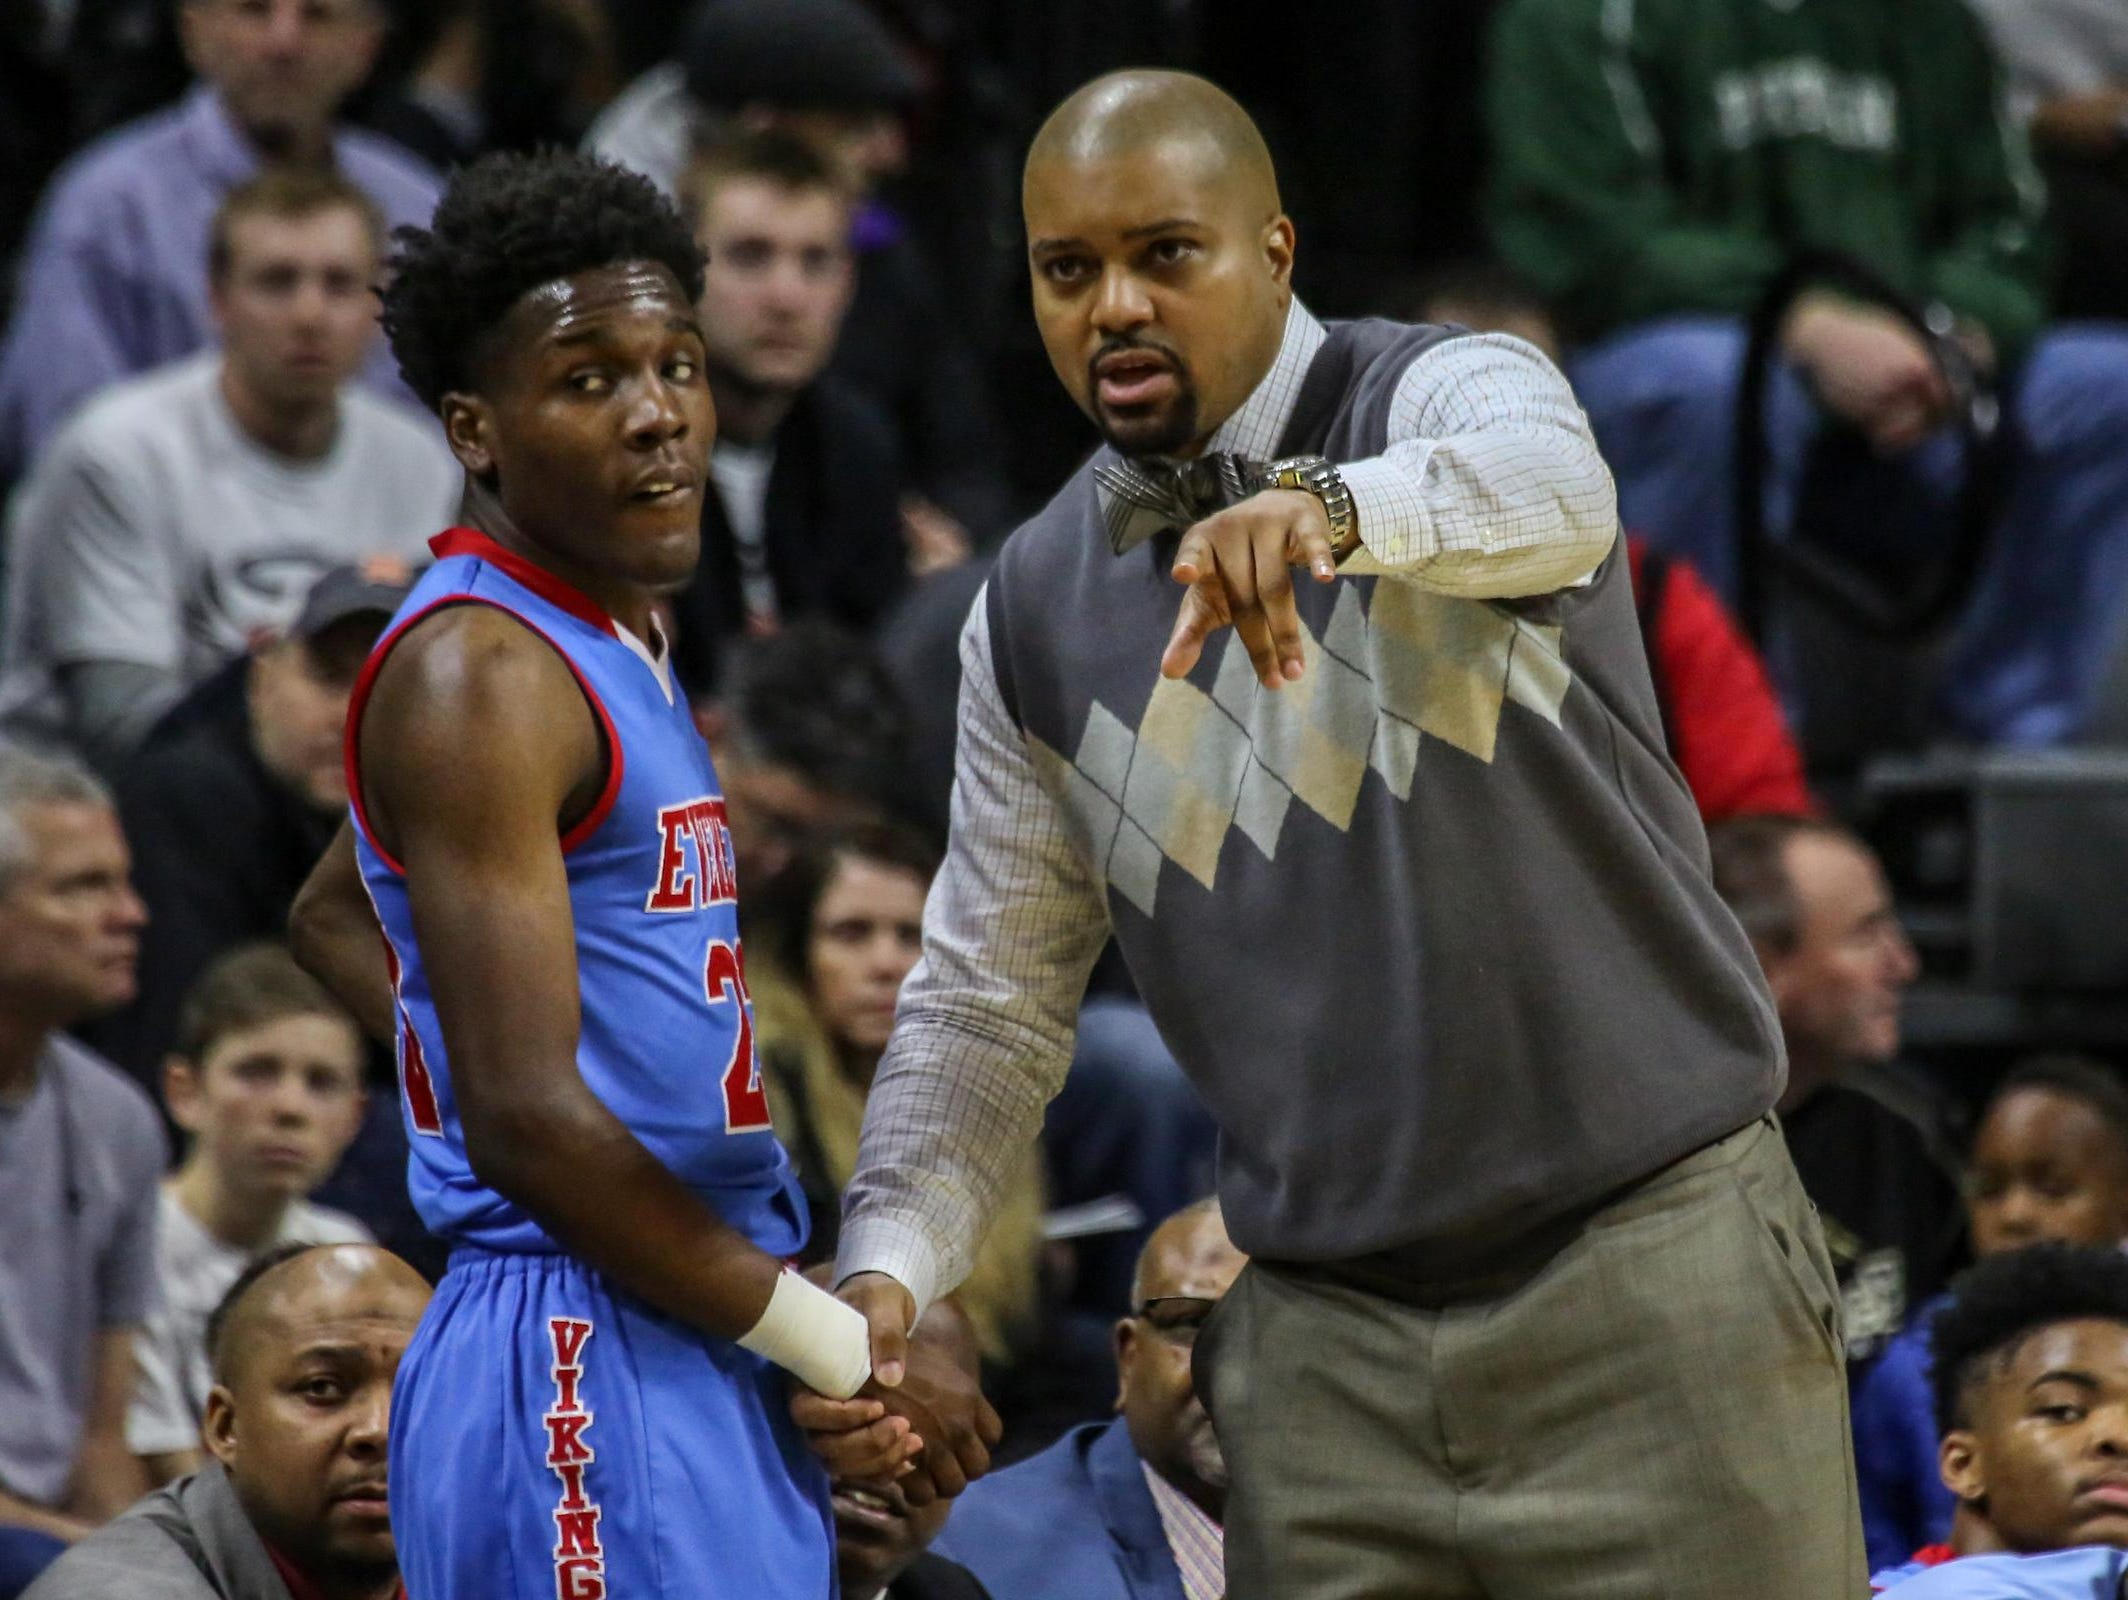 Lansing Everett's head coach Desmond Ferguson talks with Victor Edwards, during the MHSAA boys basketball Class A semifinals against North Farmington at the Breslin Center in East Lansing, Mich. on Friday, March 25, 2016.